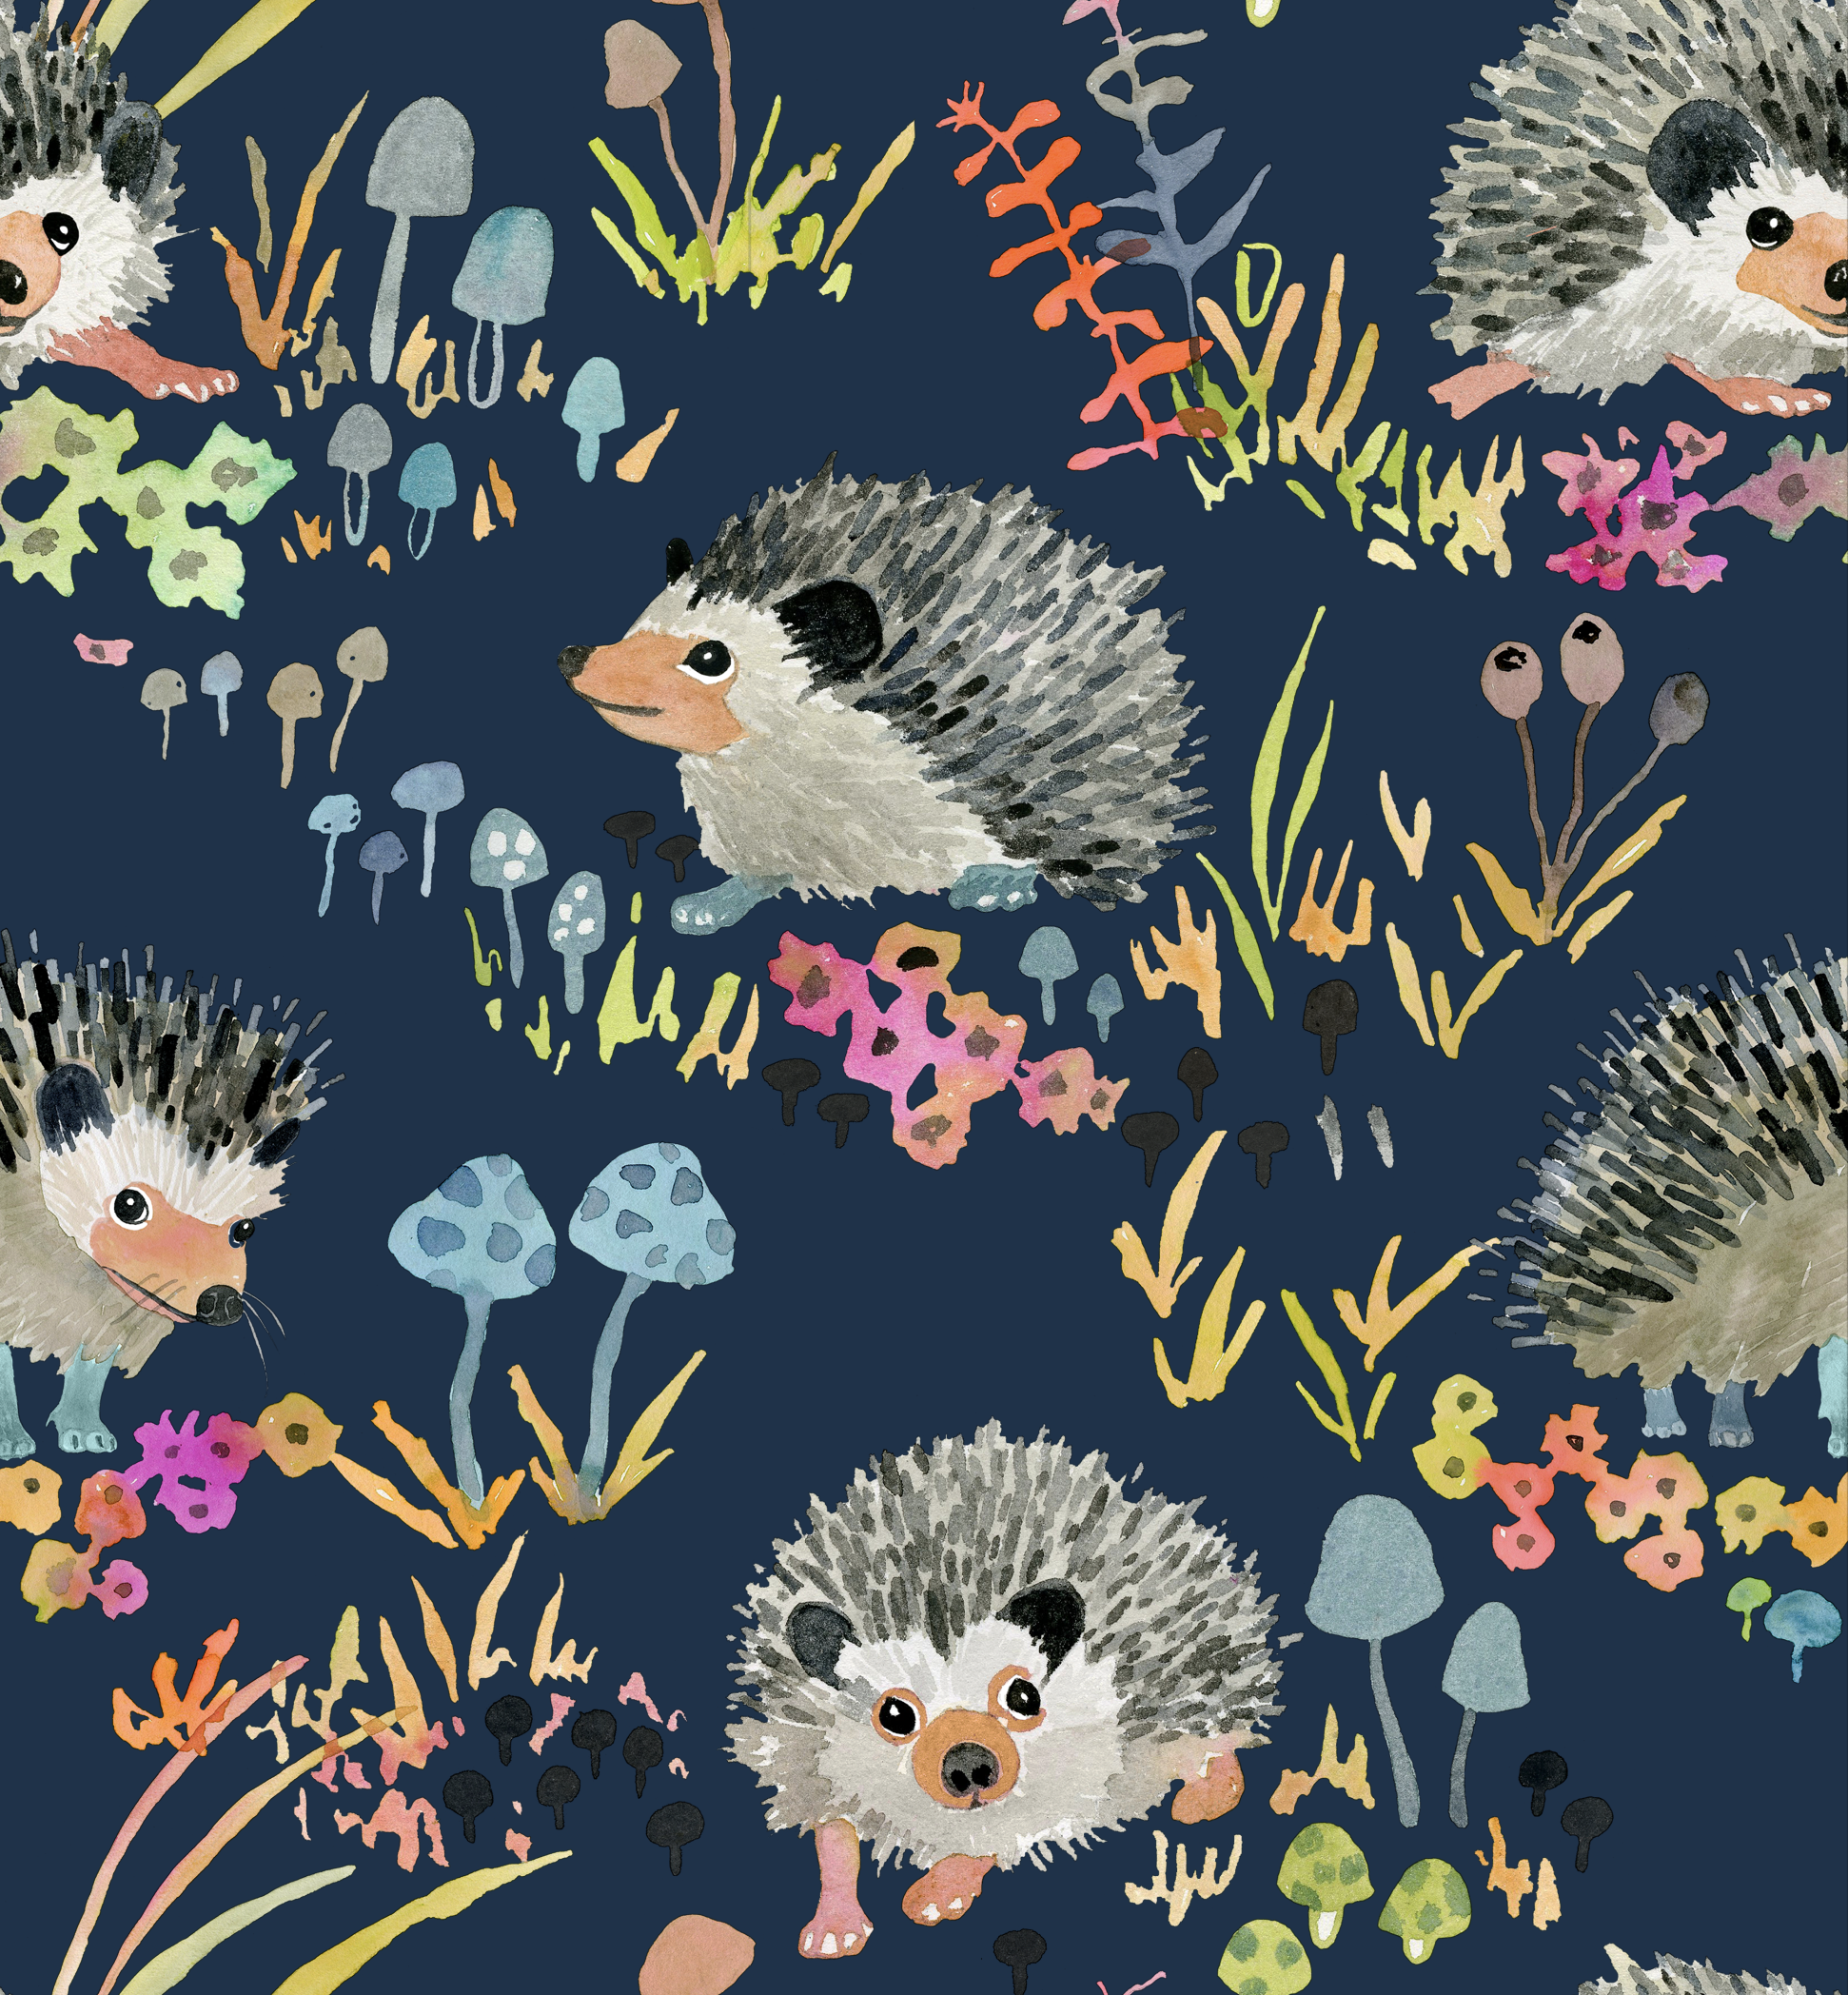 9 X 12 Sample Of Our Hedgehogs Wallpaper Wallpaper Samples Hedgehog Art Wallpaper